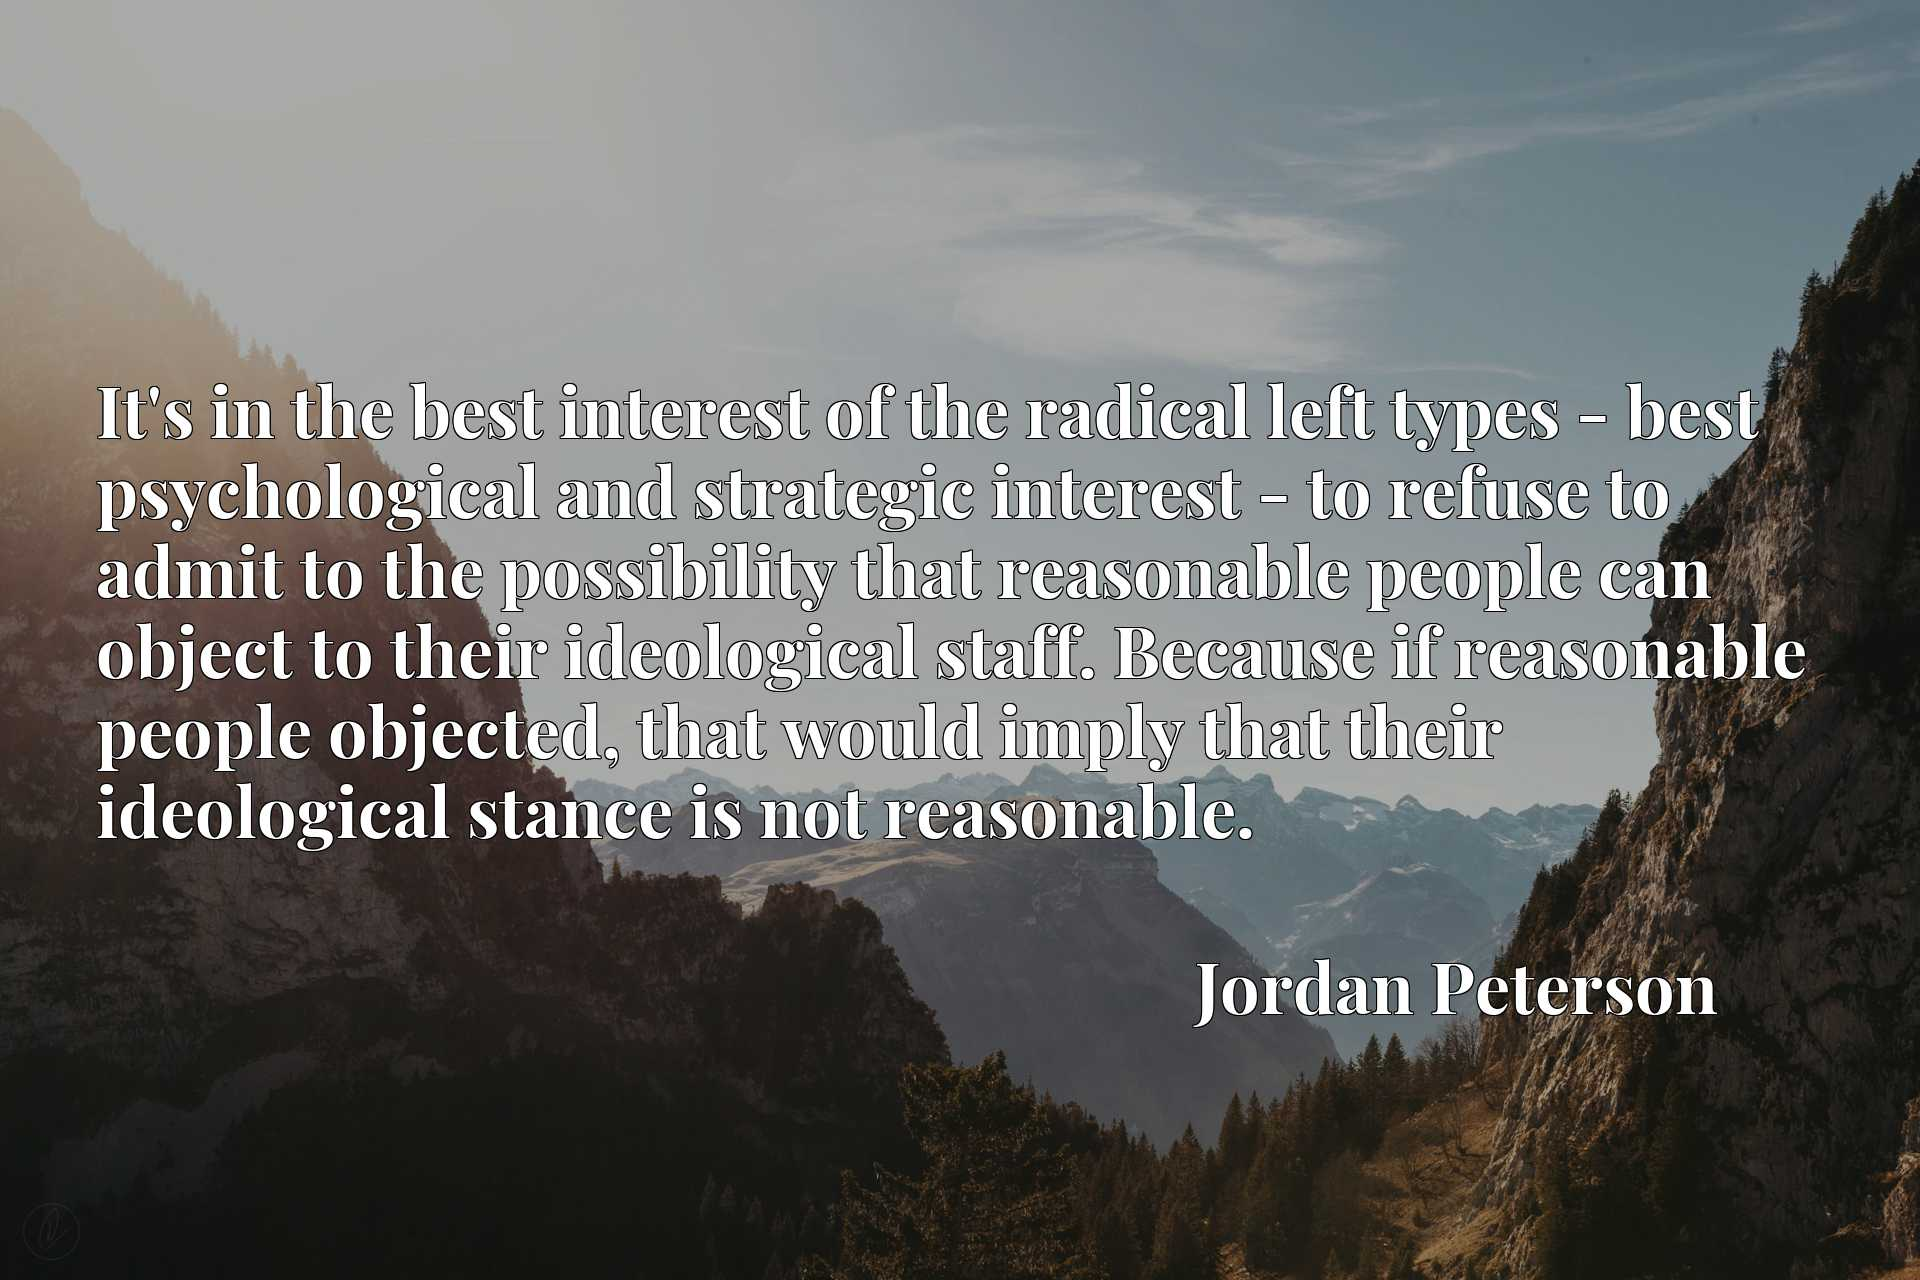 It's in the best interest of the radical left types - best psychological and strategic interest - to refuse to admit to the possibility that reasonable people can object to their ideological staff. Because if reasonable people objected, that would imply that their ideological stance is not reasonable.